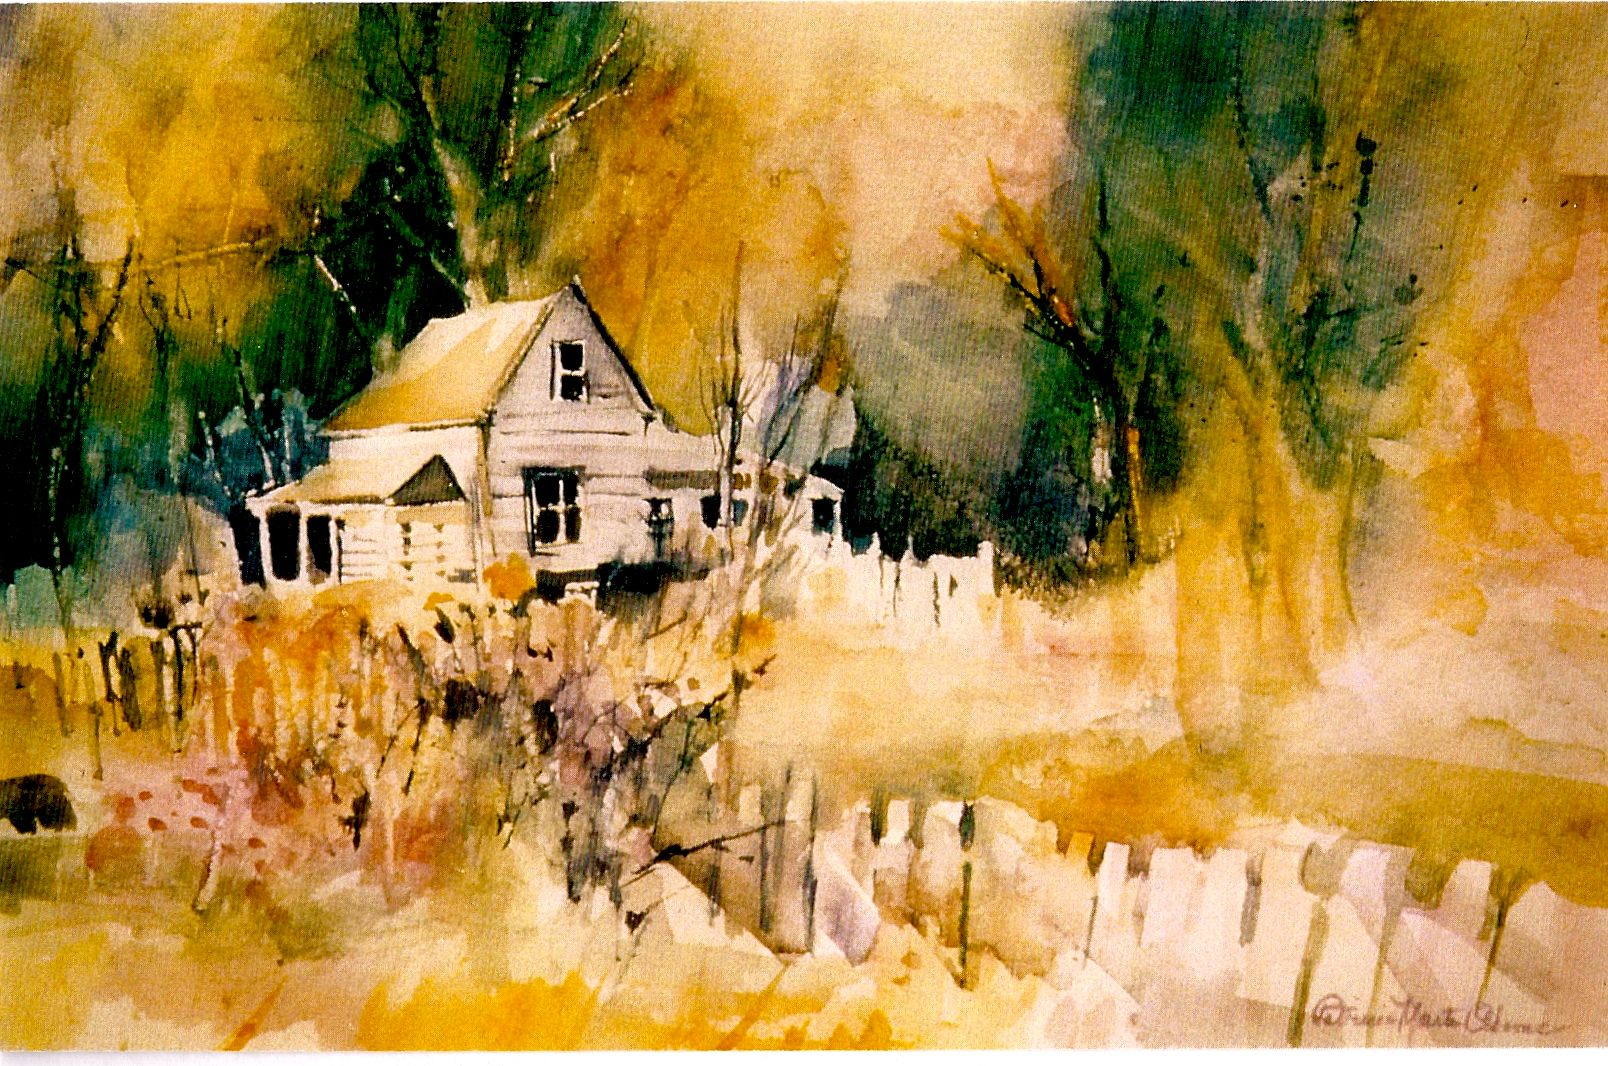 Mendocino Cottage I painted this in watercolor by Patricia Osborne